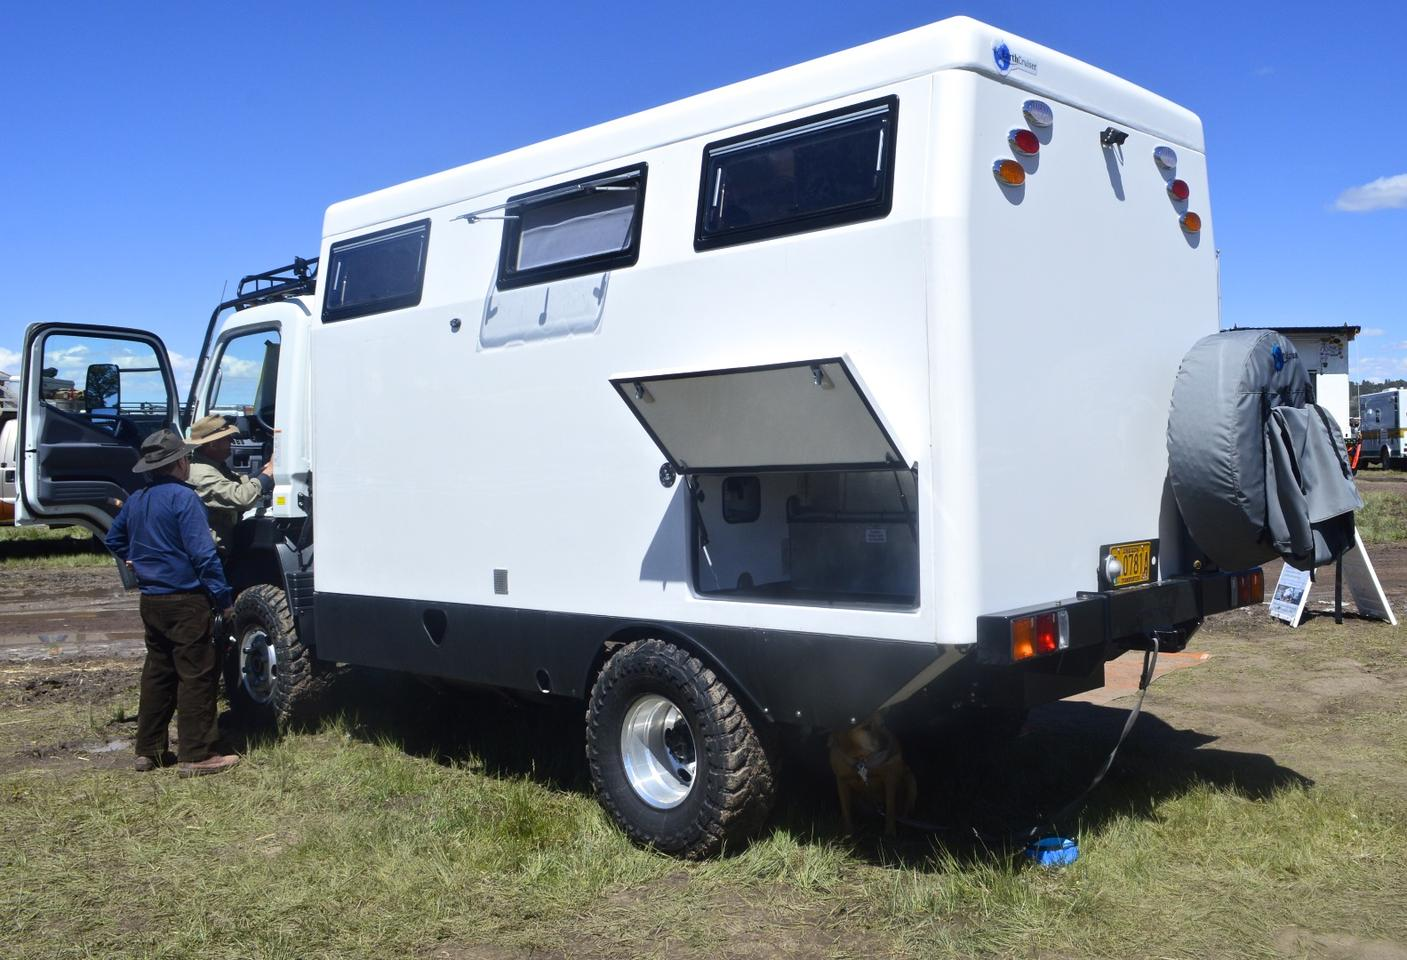 EarthCruiser's new fixed roof saves buyers a bit of money